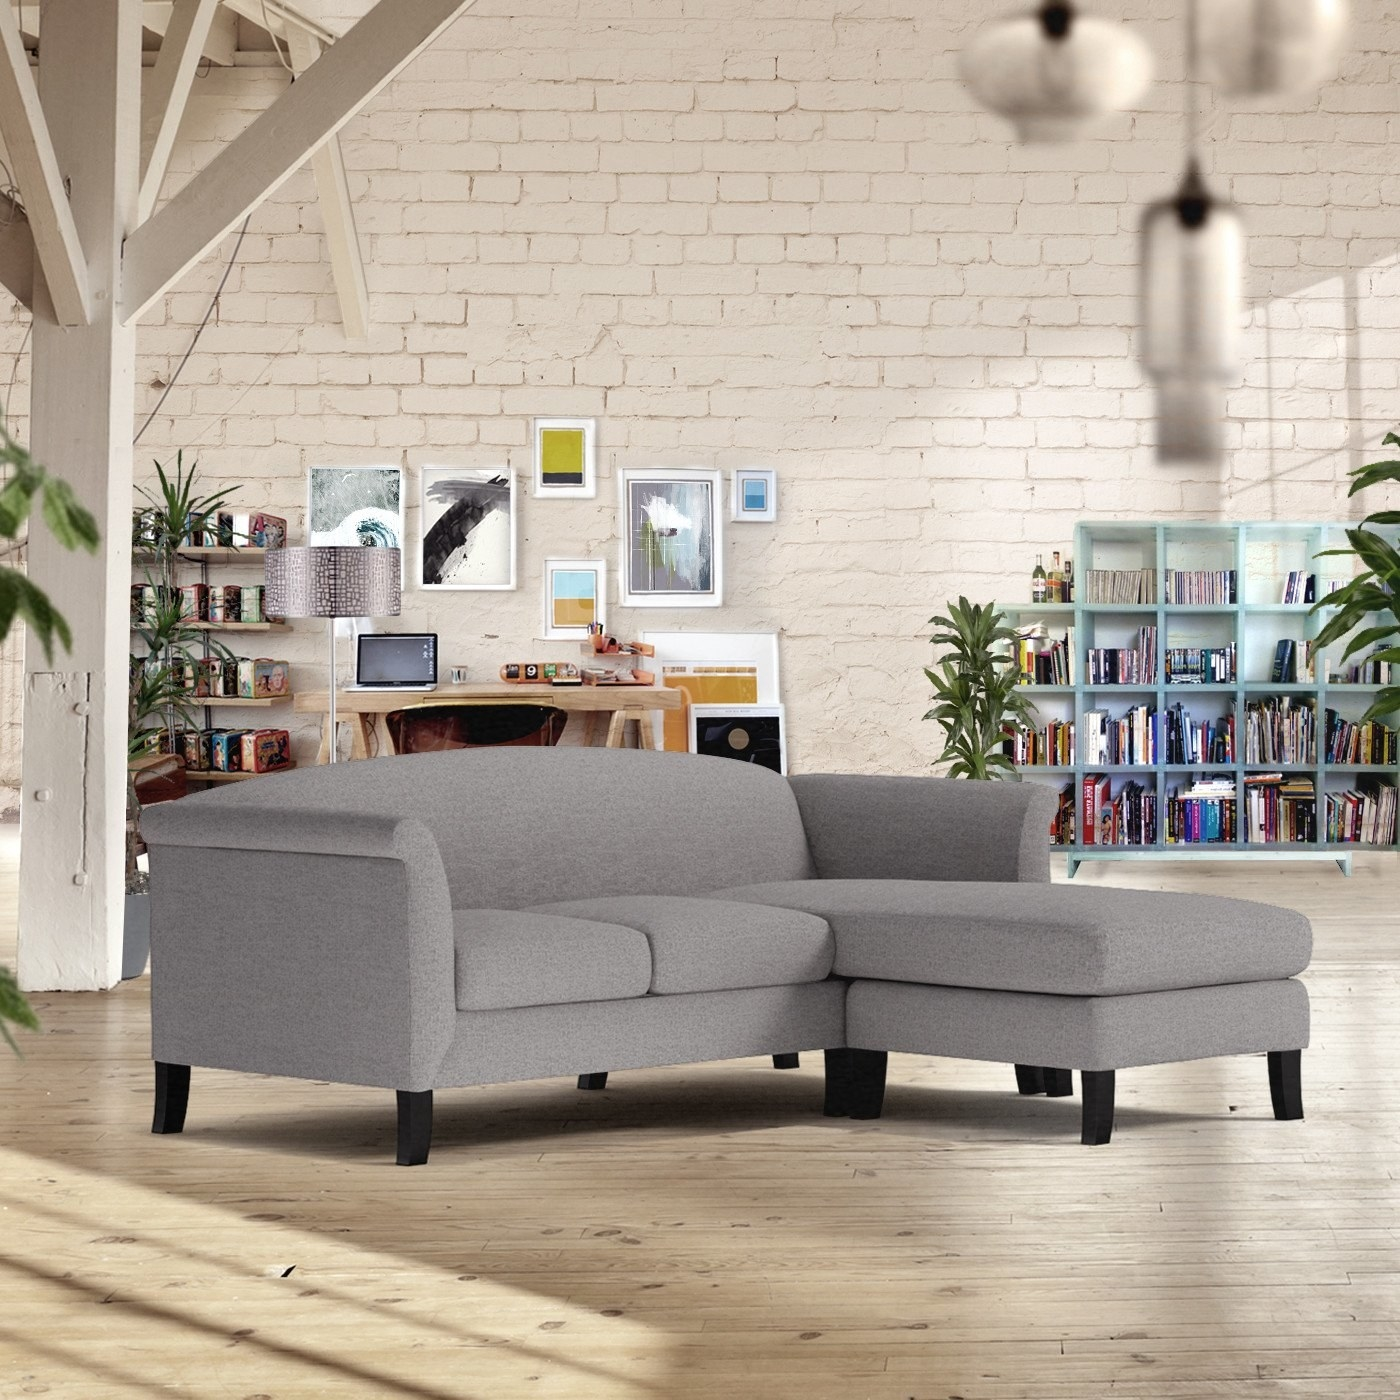 Apt 2B Offers Simple Yet Sophisticated Furniture Thatu0027ll Fit In Any Room.